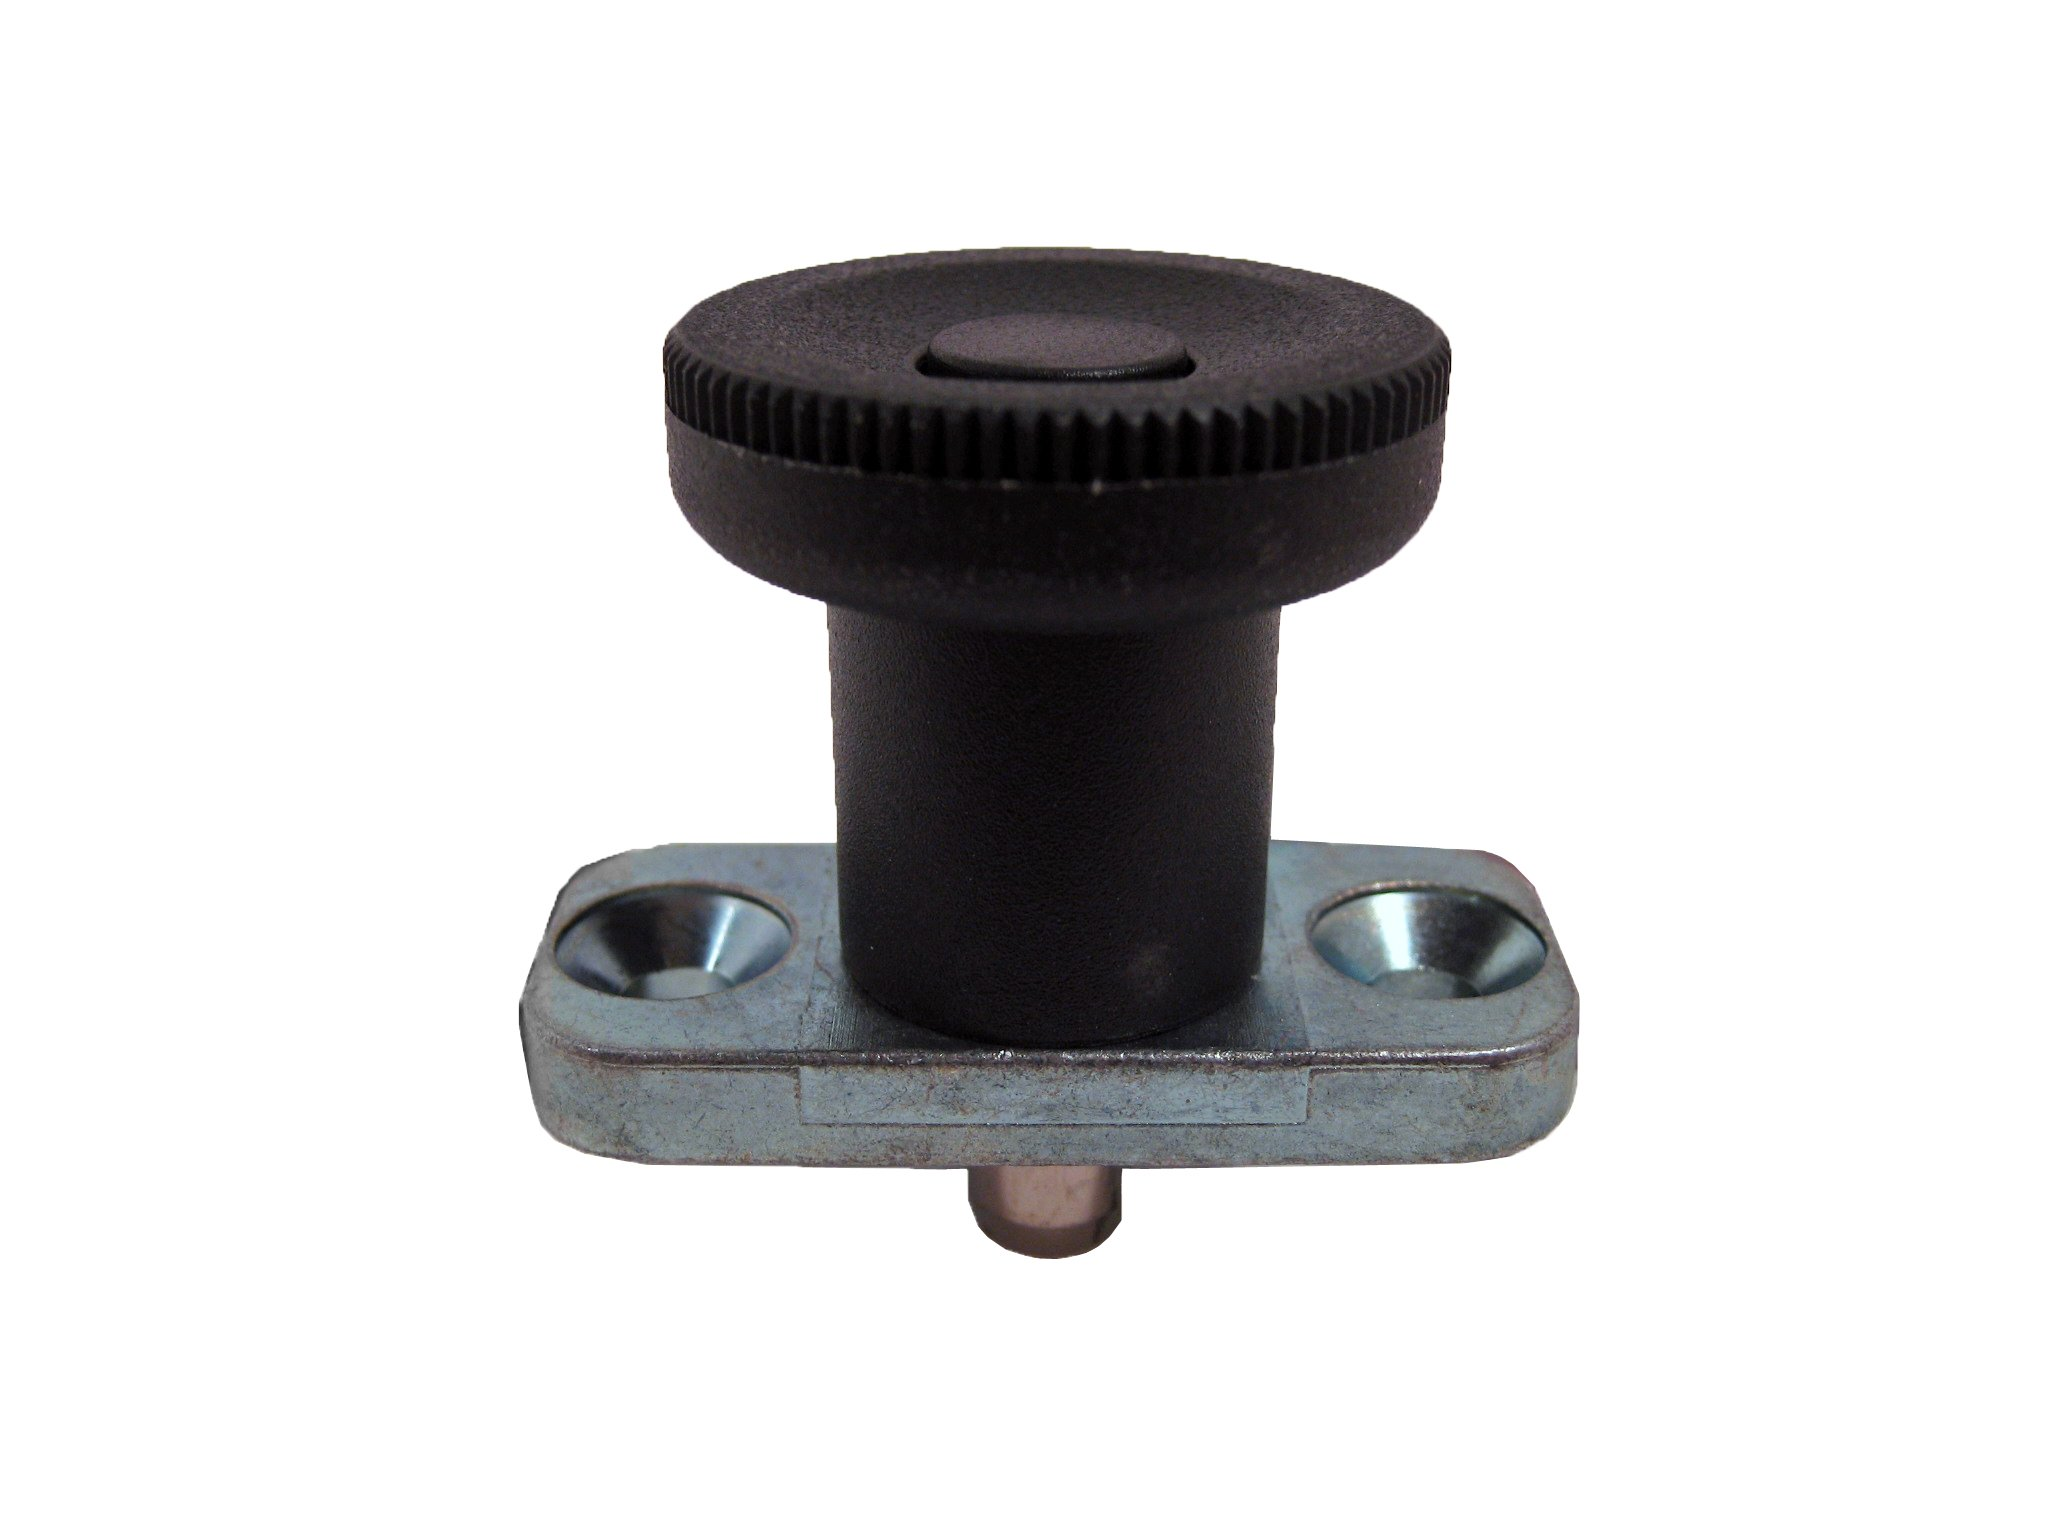 GN 608.5 Series Stainless Steel Non Lock-Out Type Plate Mount Indexing Plunger, 54mm Item Length, 8mm Item Diameter